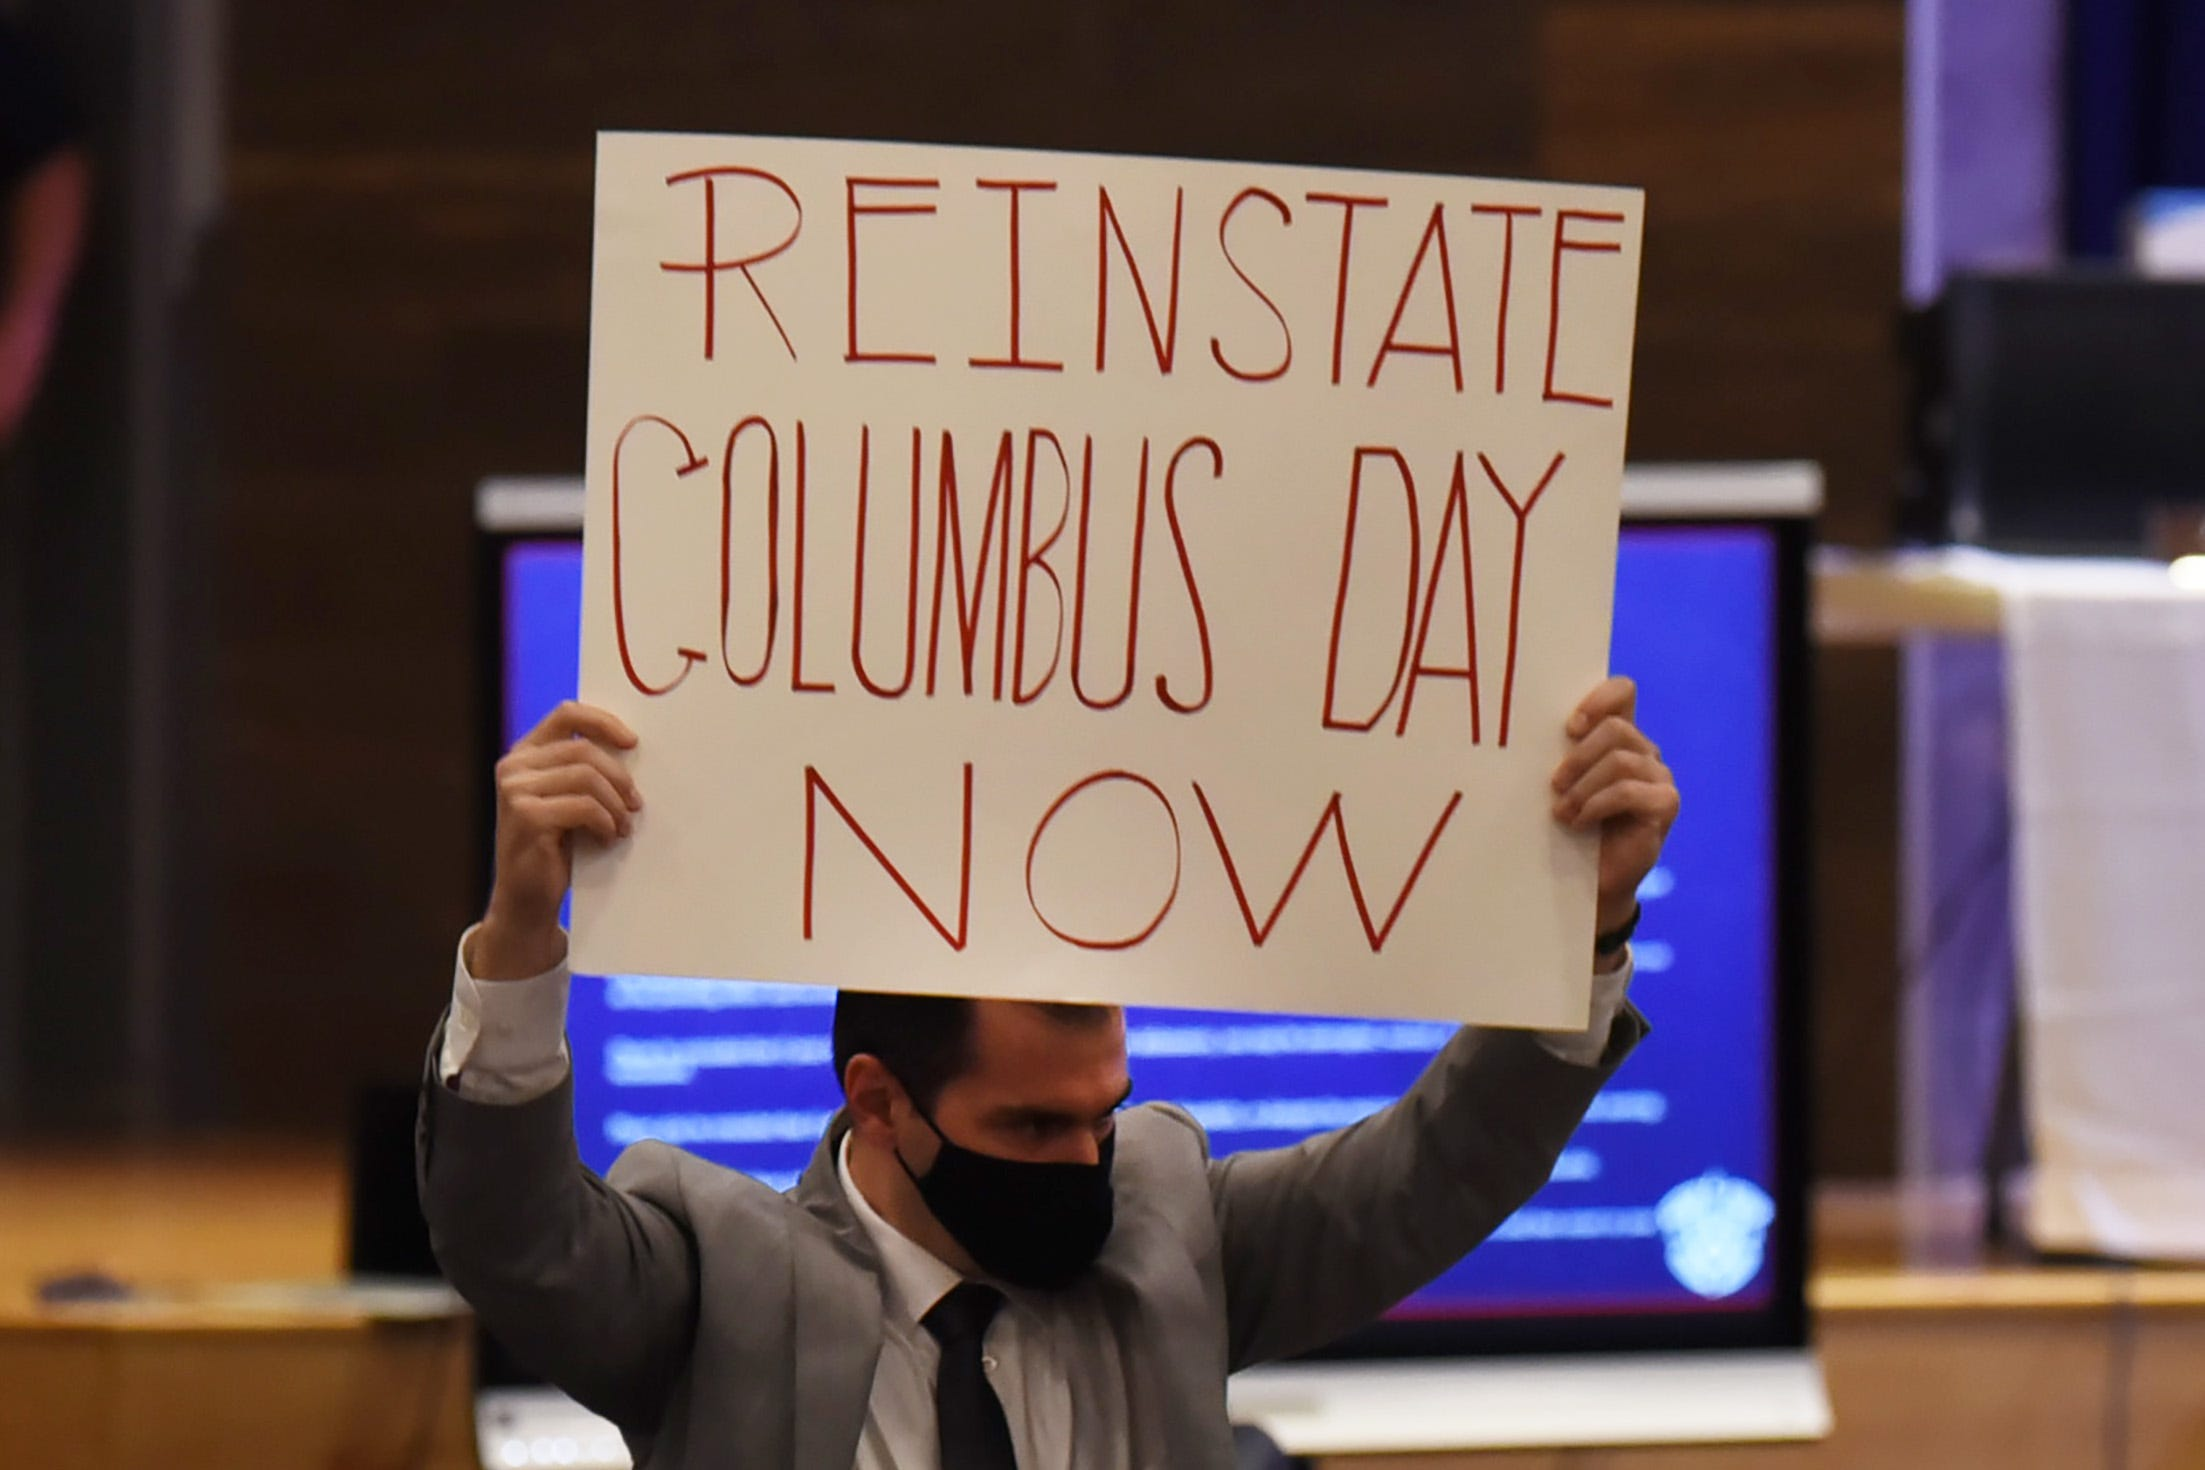 After backlash, New Jersey school board reverses decision to scrap holiday names like Columbus Day